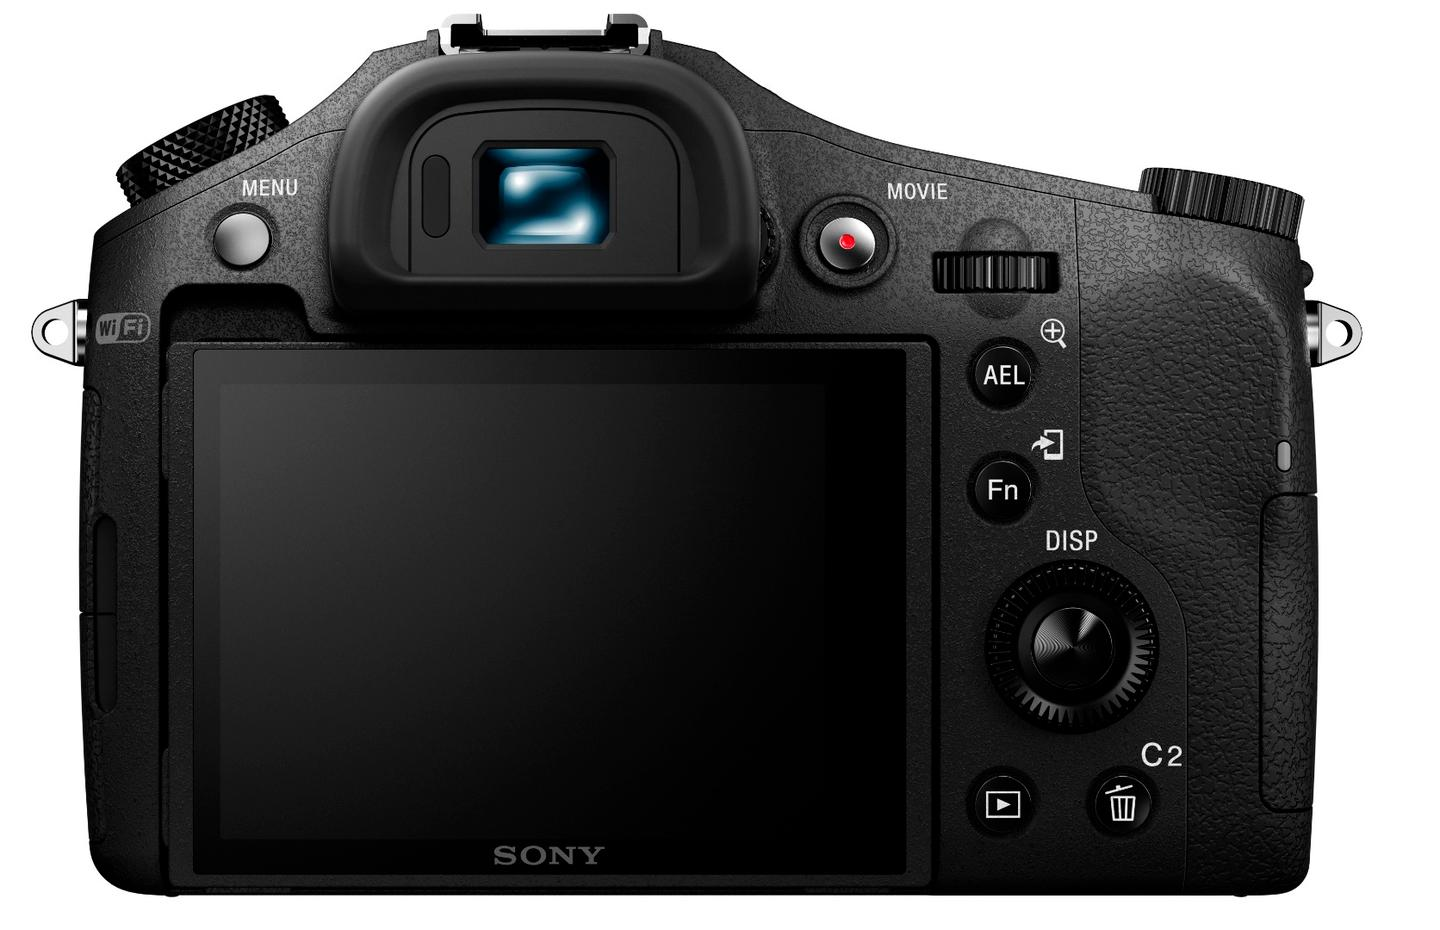 The Sony Cyber-shot RX10 II uses a new one-inch-type stacked Exmor RS CMOS sensor with an effective 20.2-megapixels